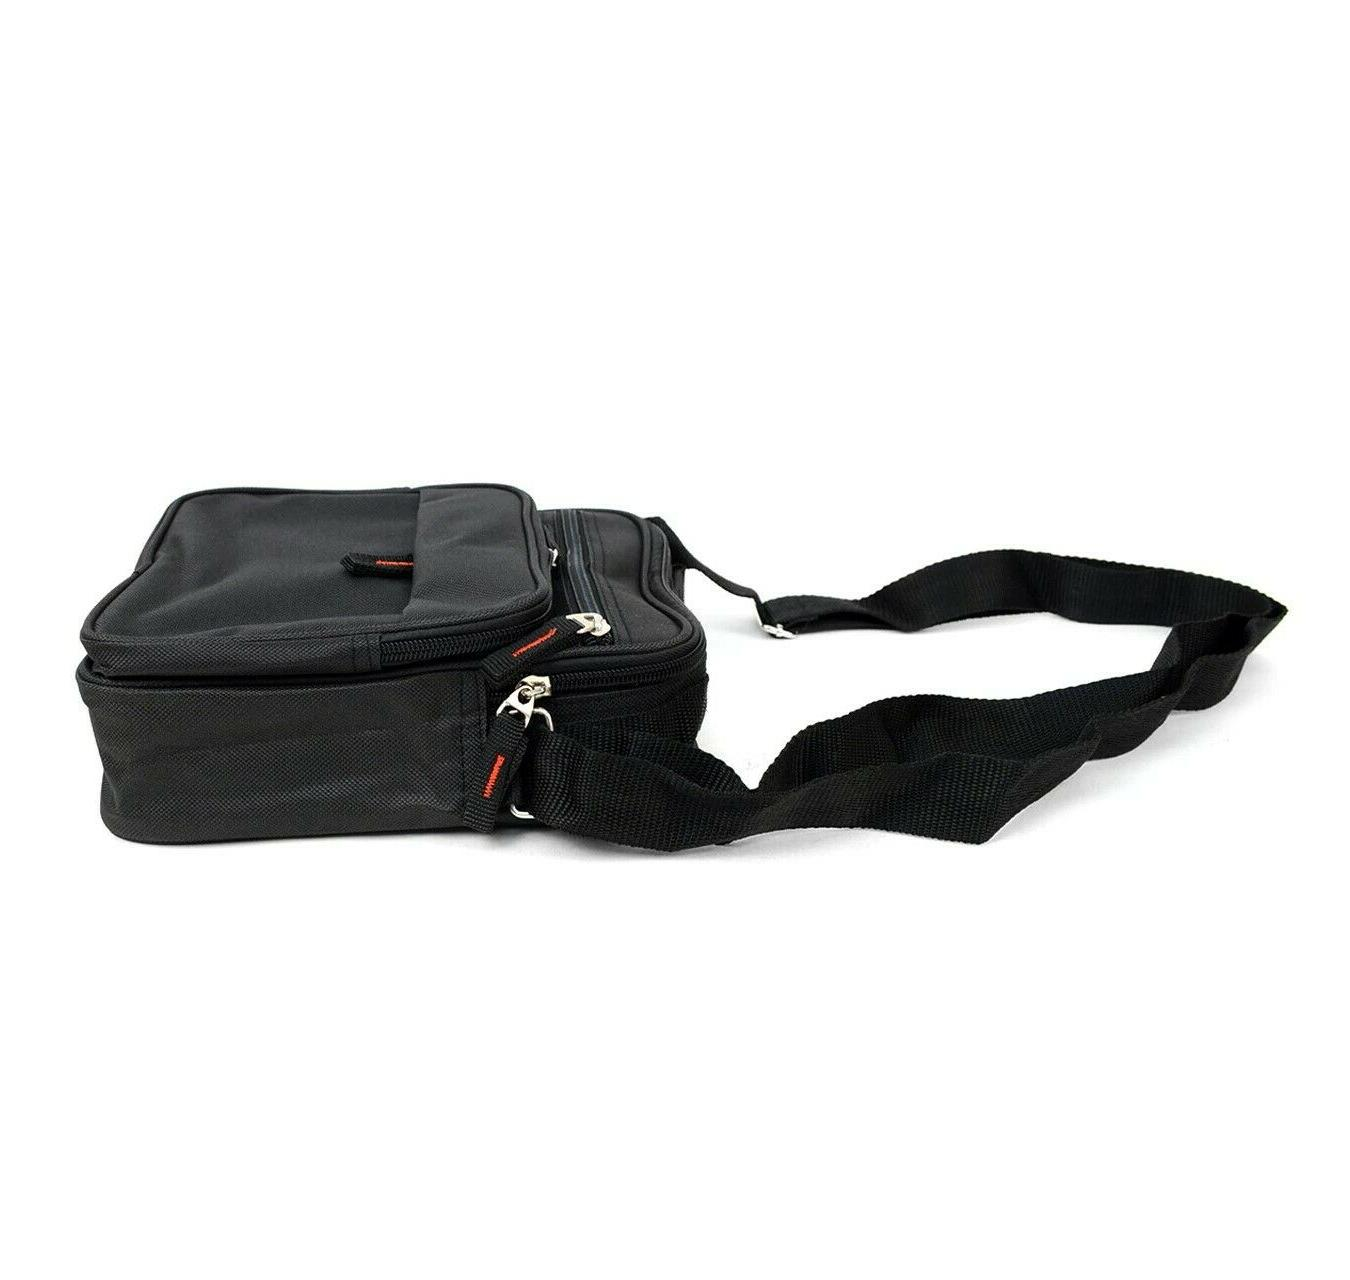 Men's Small Bag with Strap